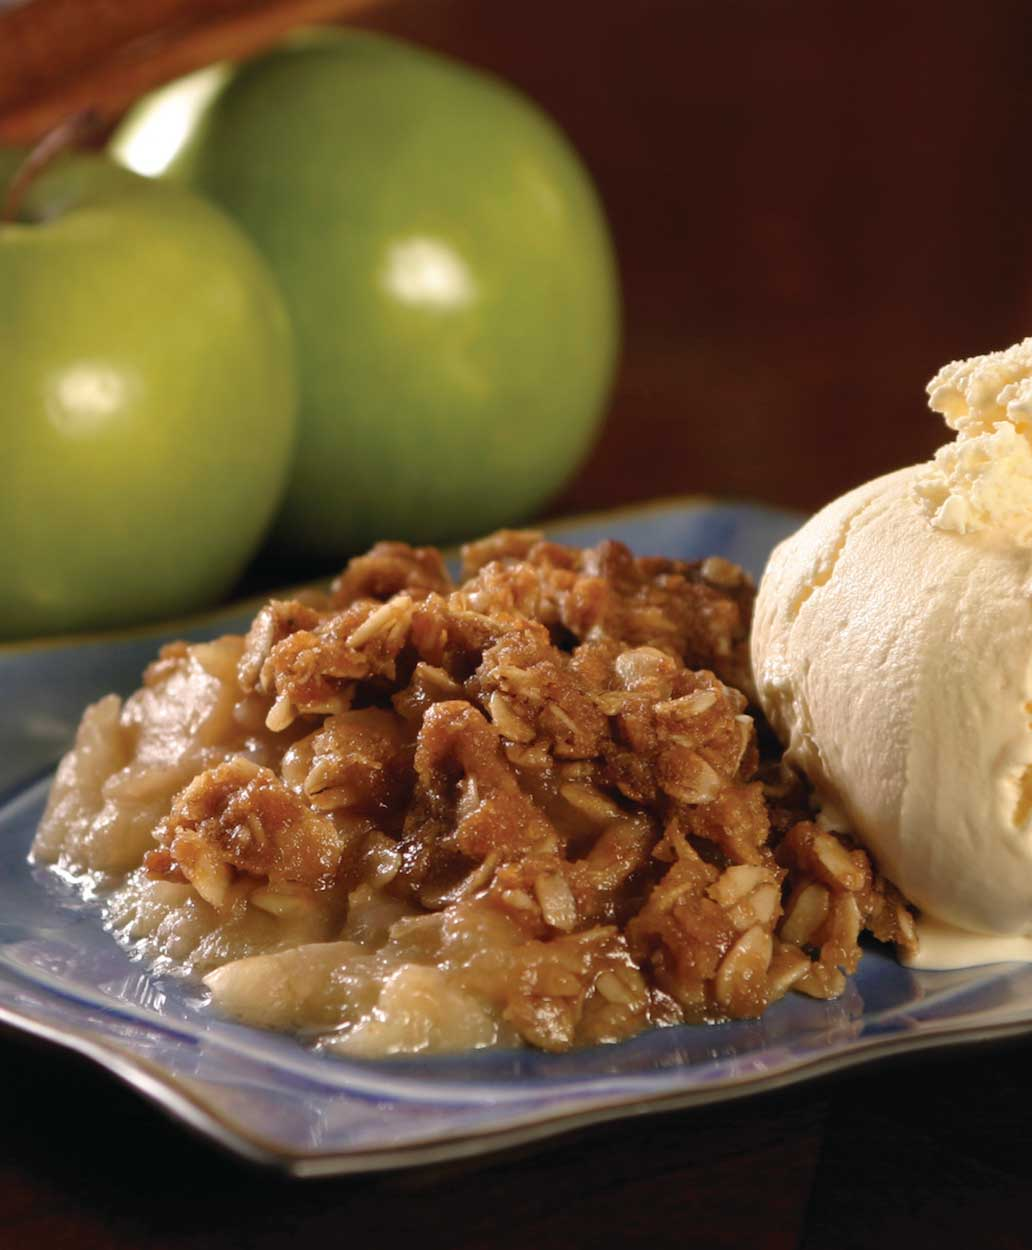 Apple-Oatmeal Crisp